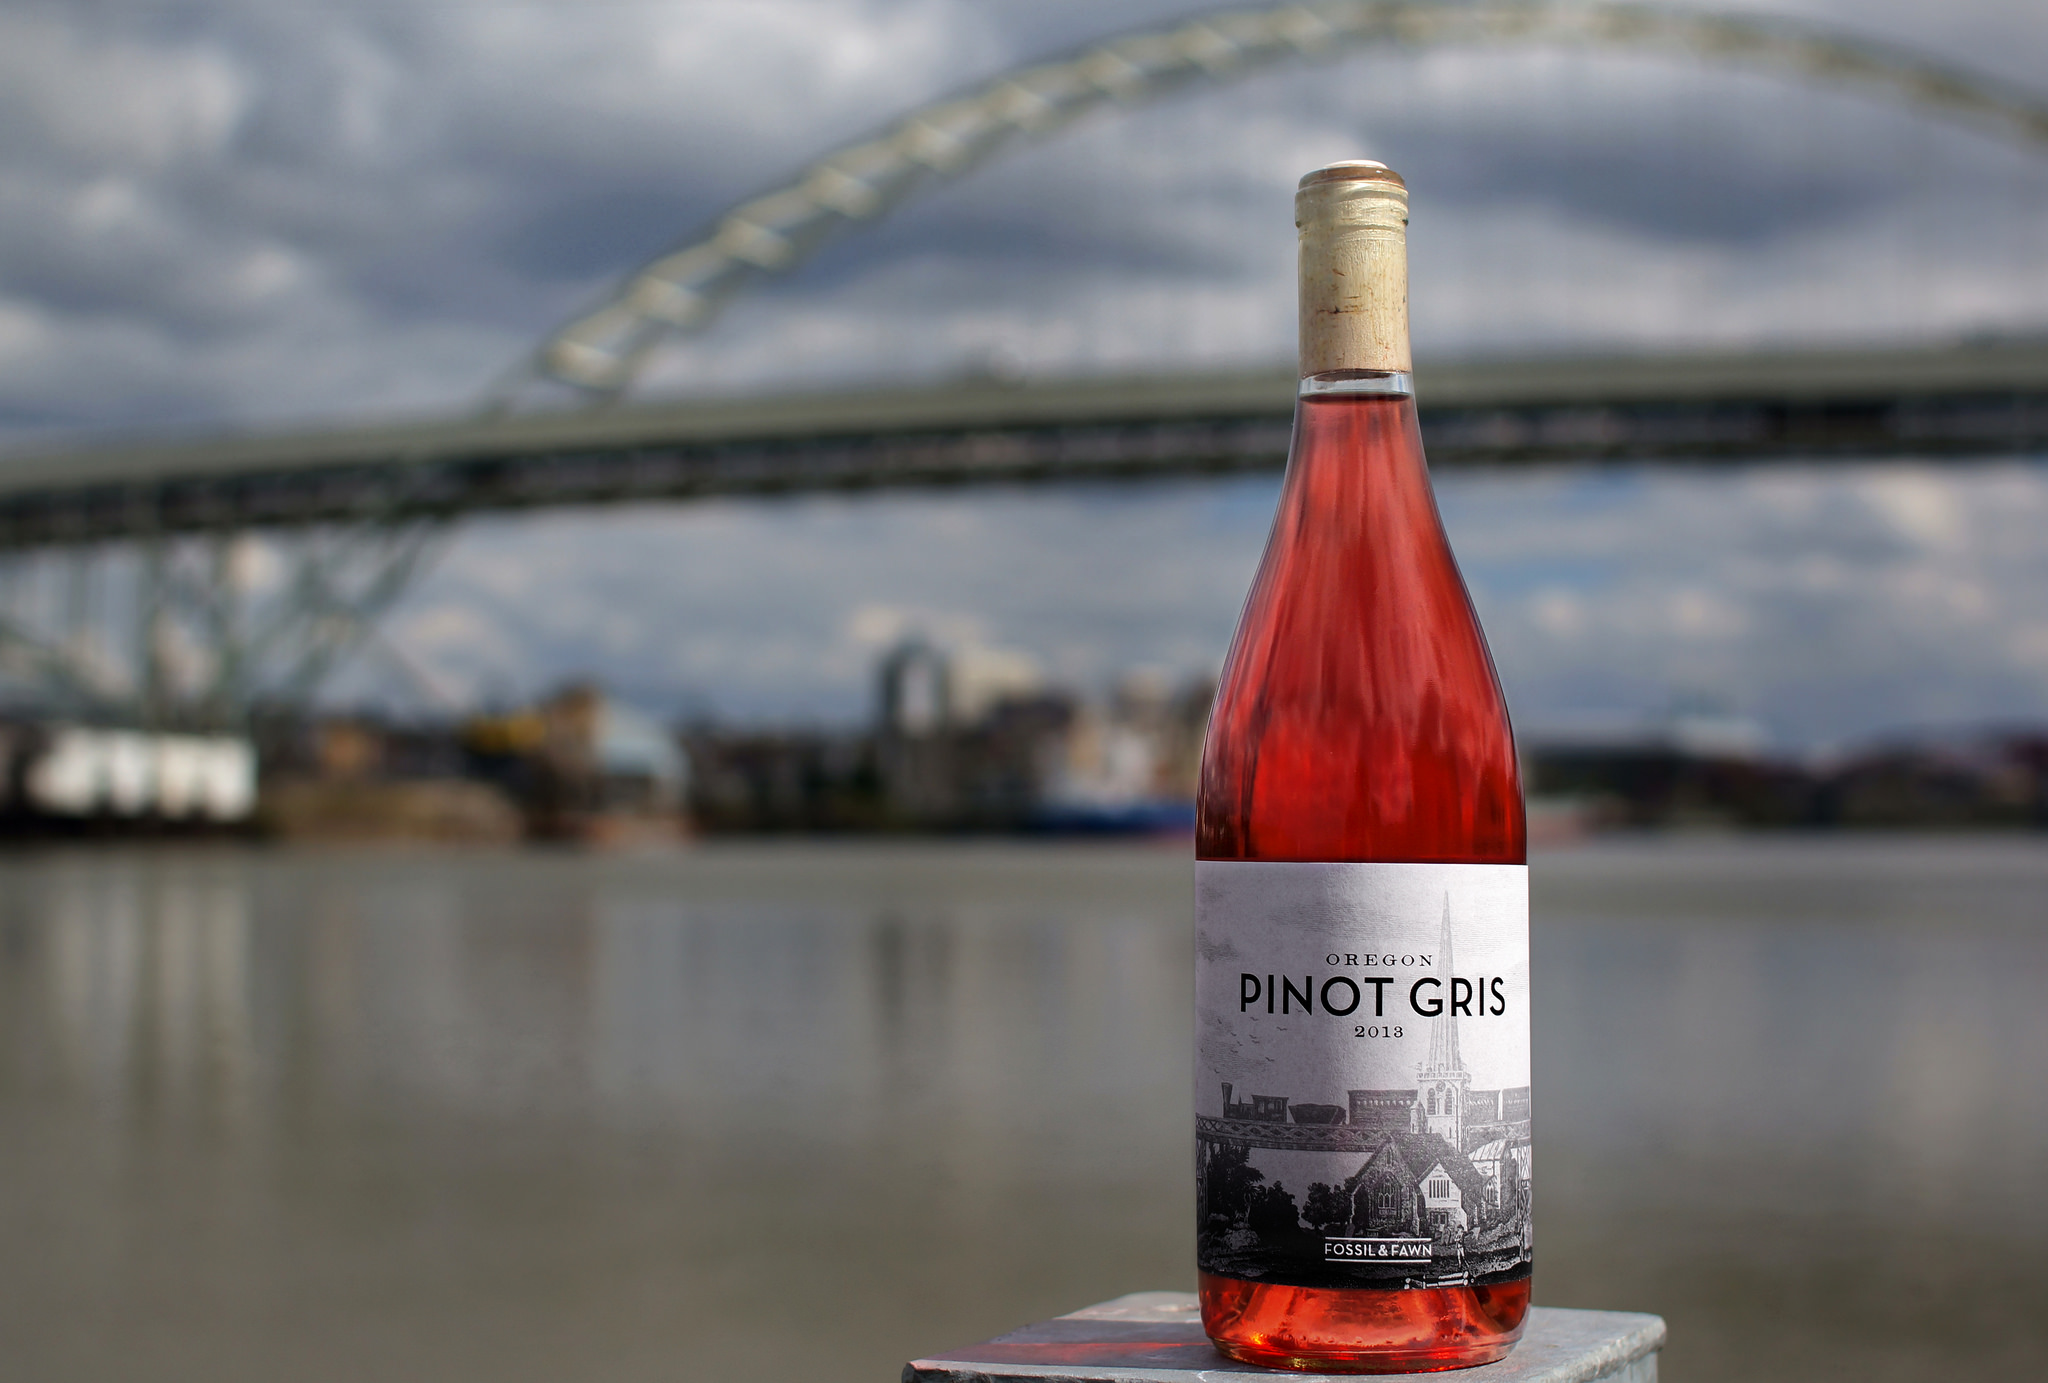 Oregon Pinot Gris Rose ramato